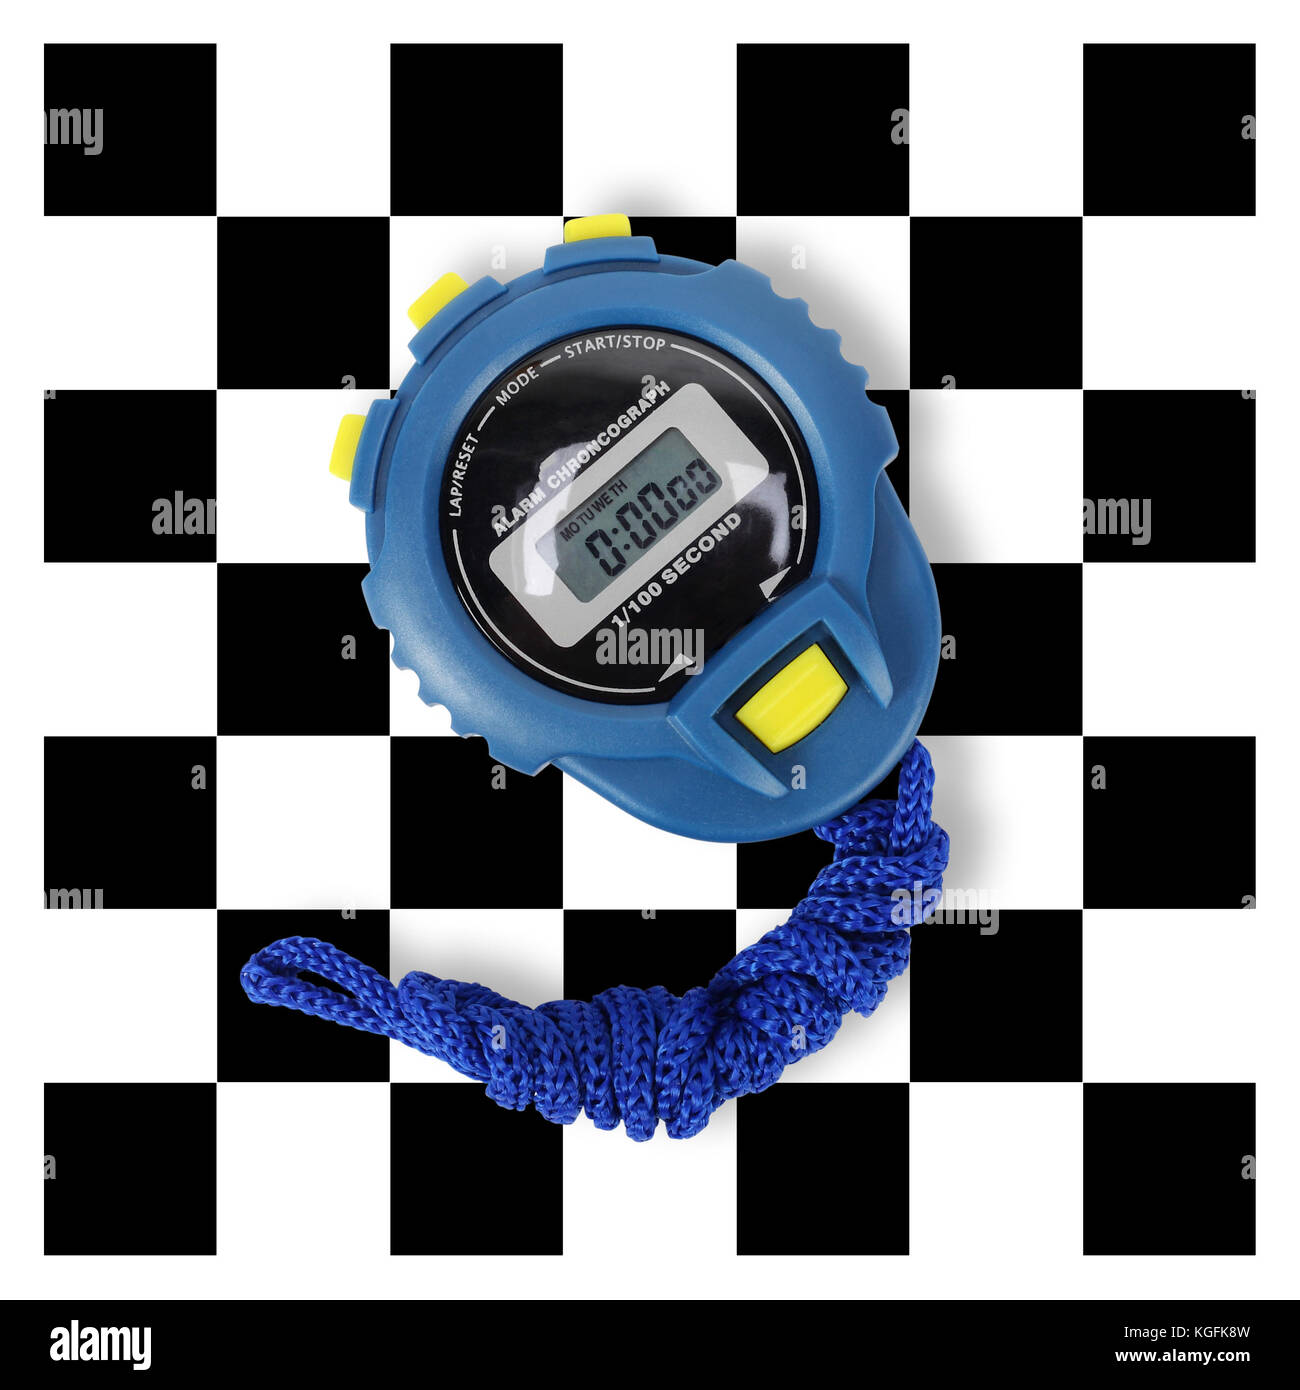 Sports equipment - Blue Digital electronic Stopwatch on a finish flag background. - Stock Image